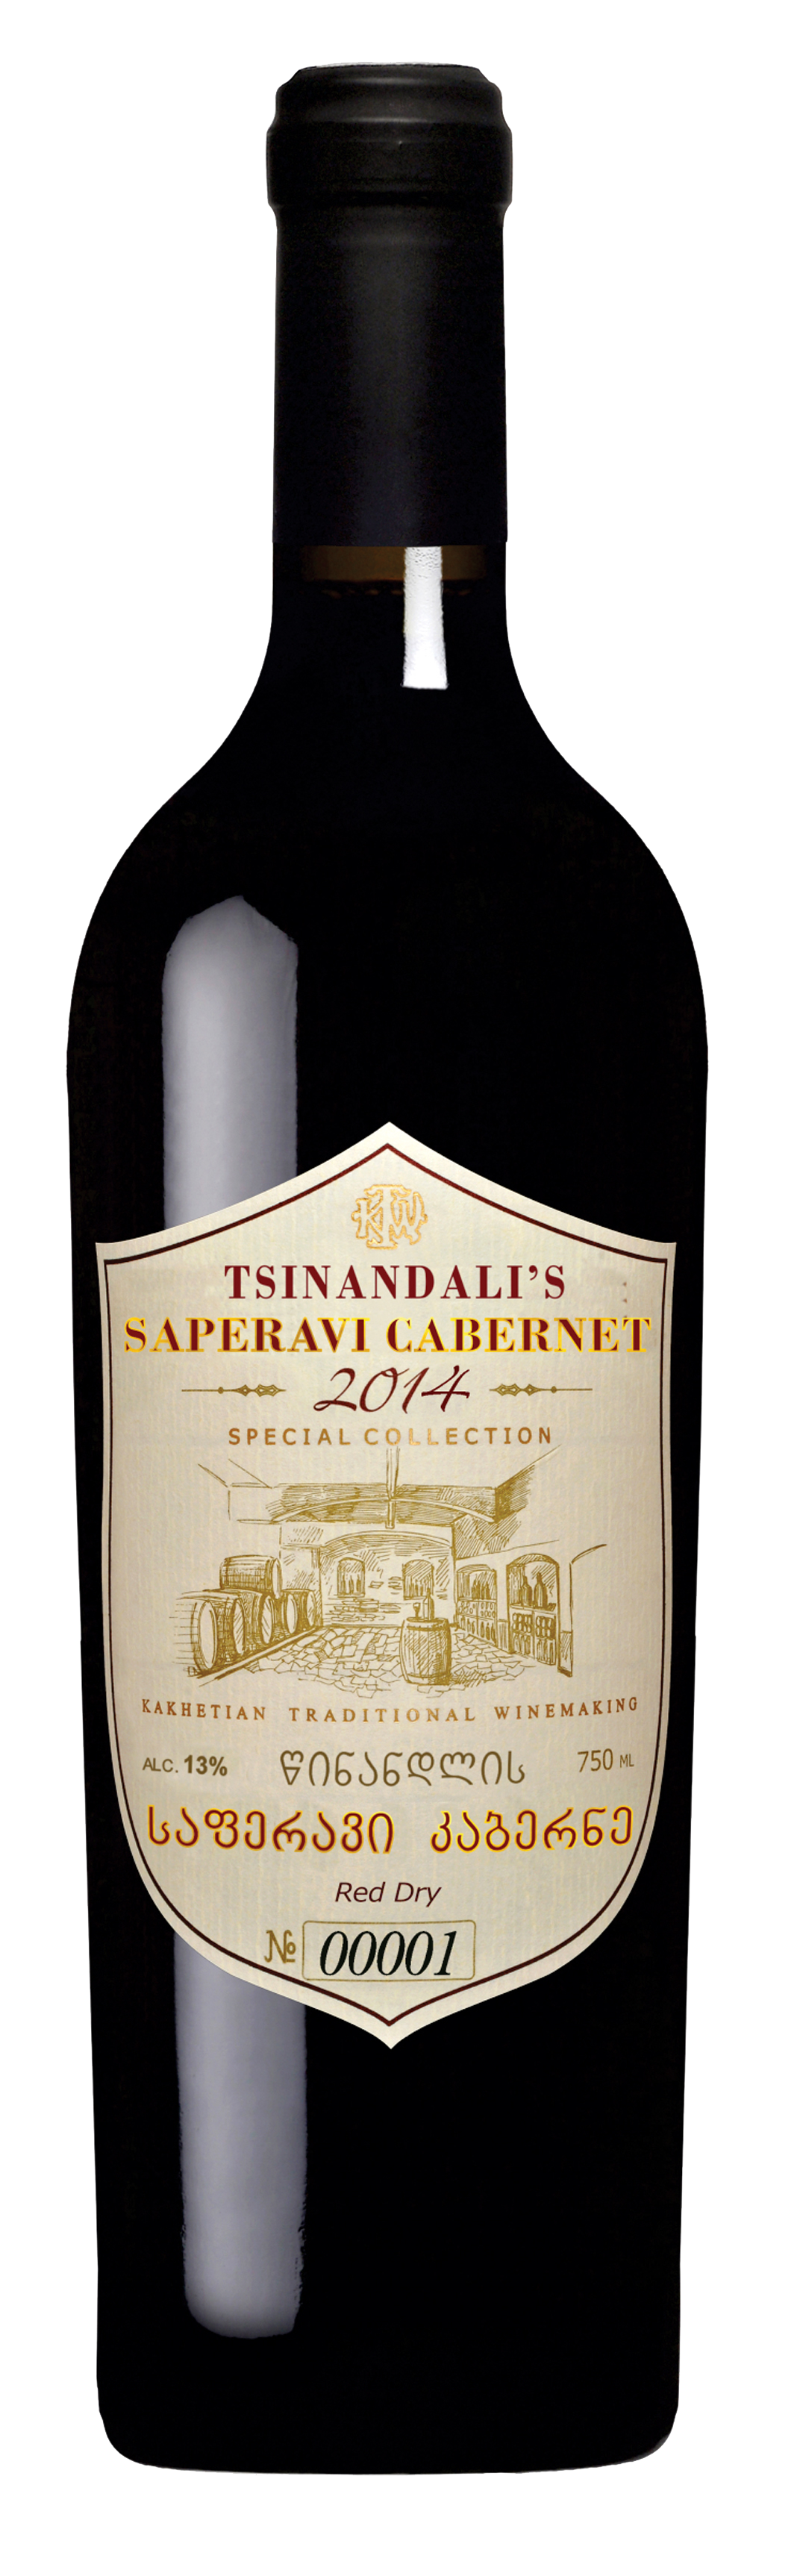 SAPERAVI CABERNET SPECIAL COLLECTION